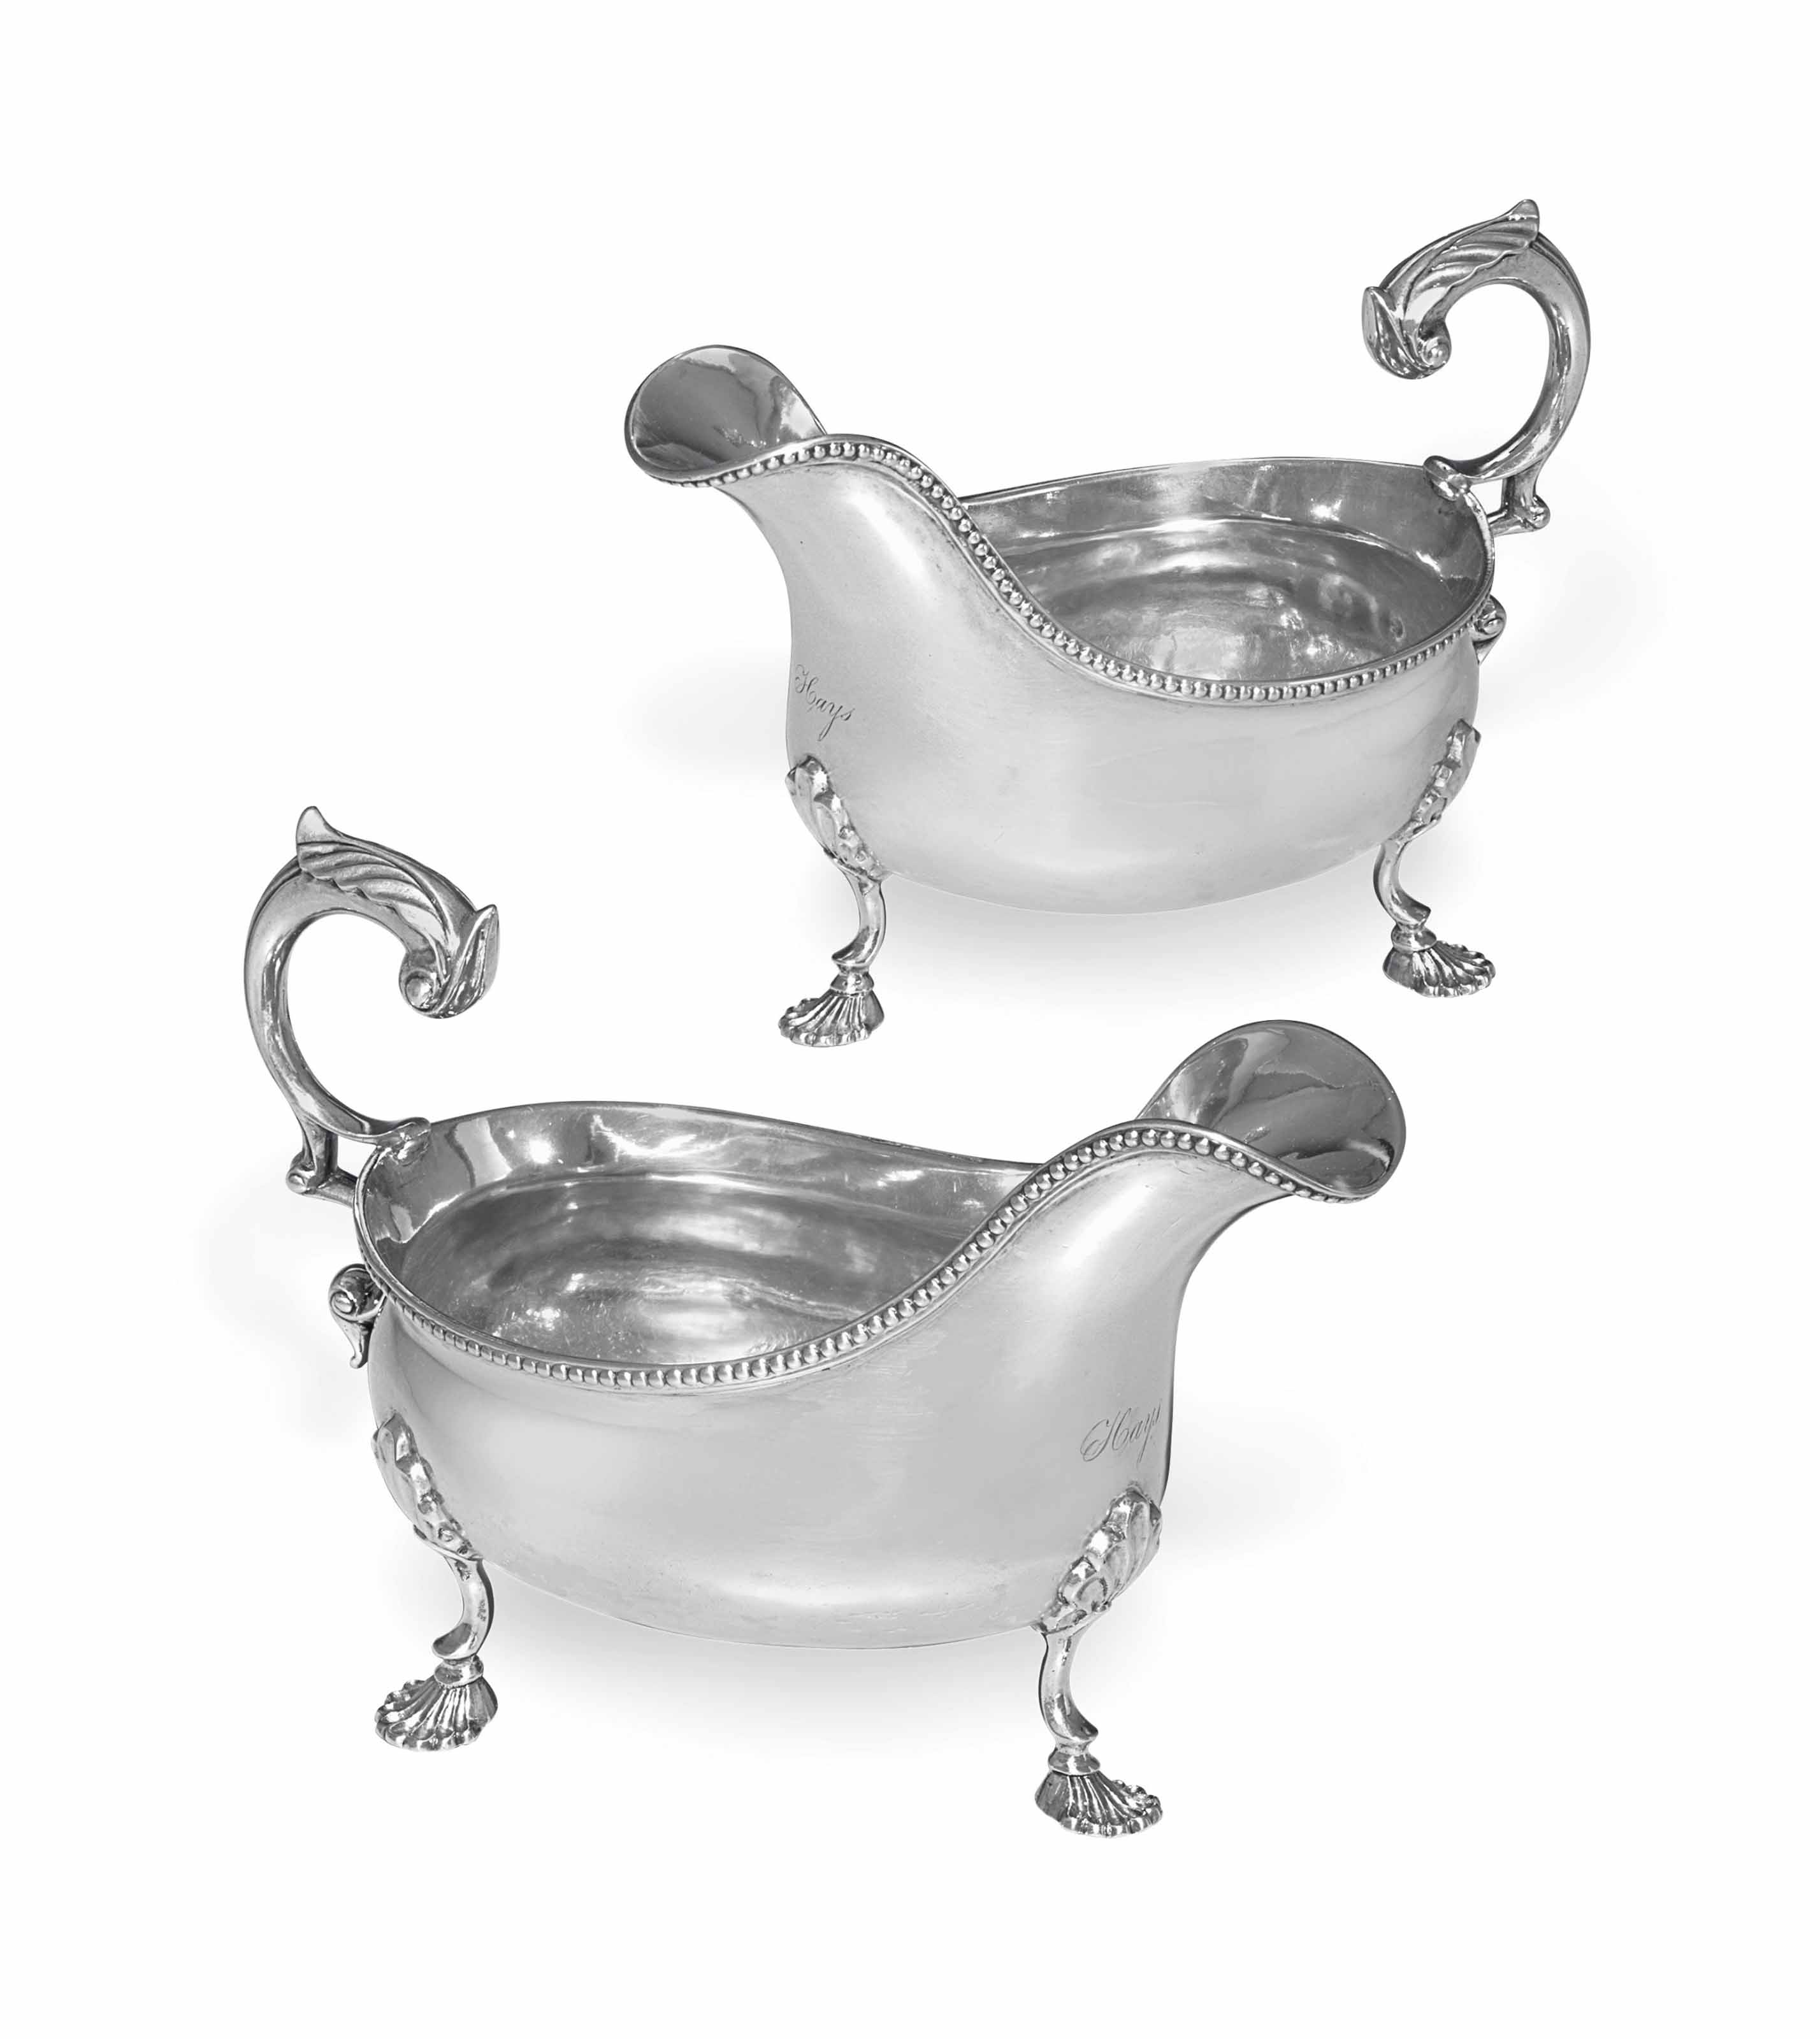 AN IMPORTANT PAIR OF SILVER SAUCEBOATS